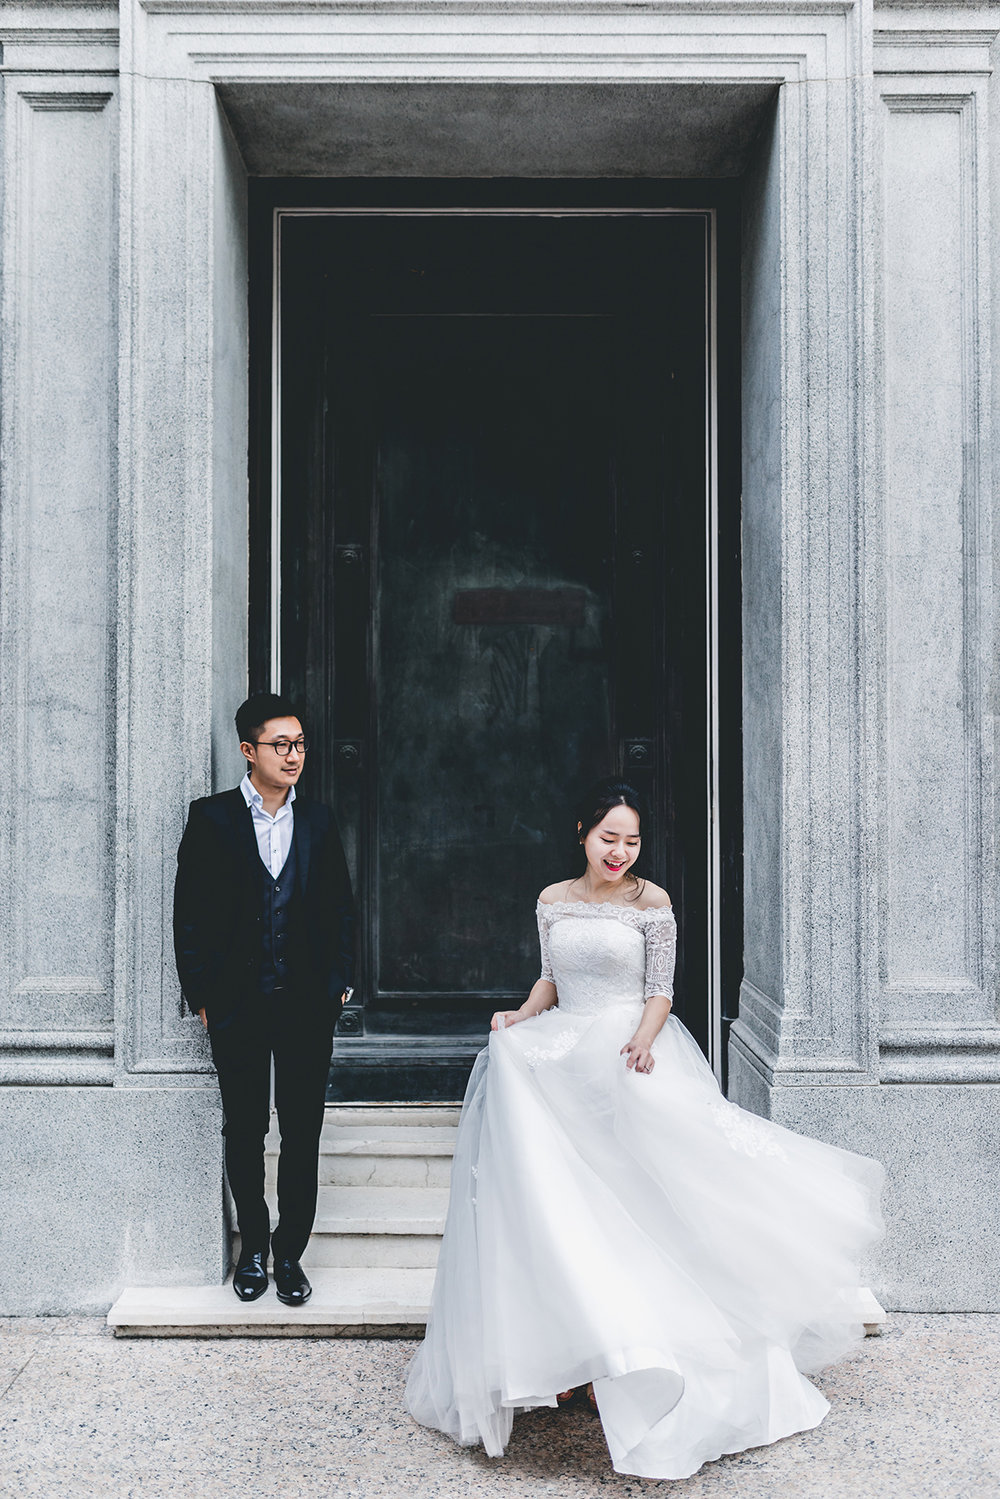 Prewedding National Gallery 00010a.JPG